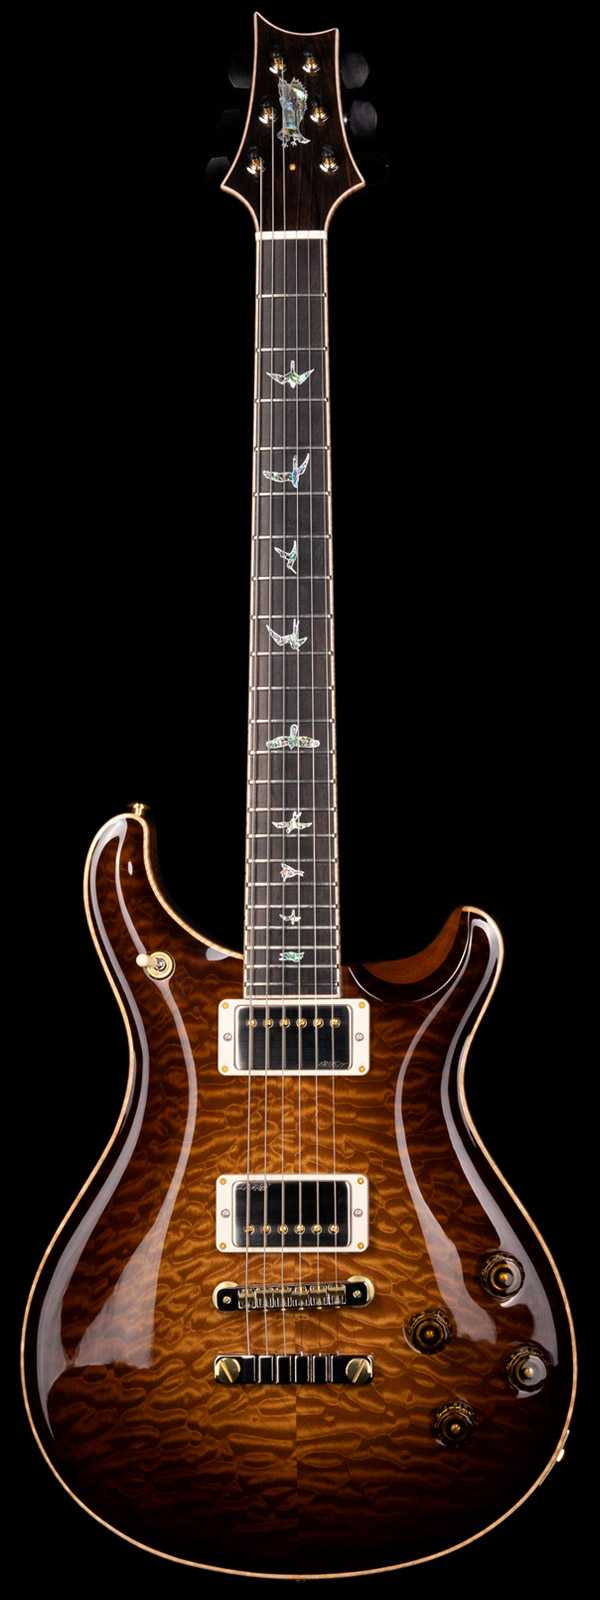 PRS Private Stock 8522 McCarty 594 Roasted Quilt Maple Top Roasted Flame Maple Neck McCarty Glow